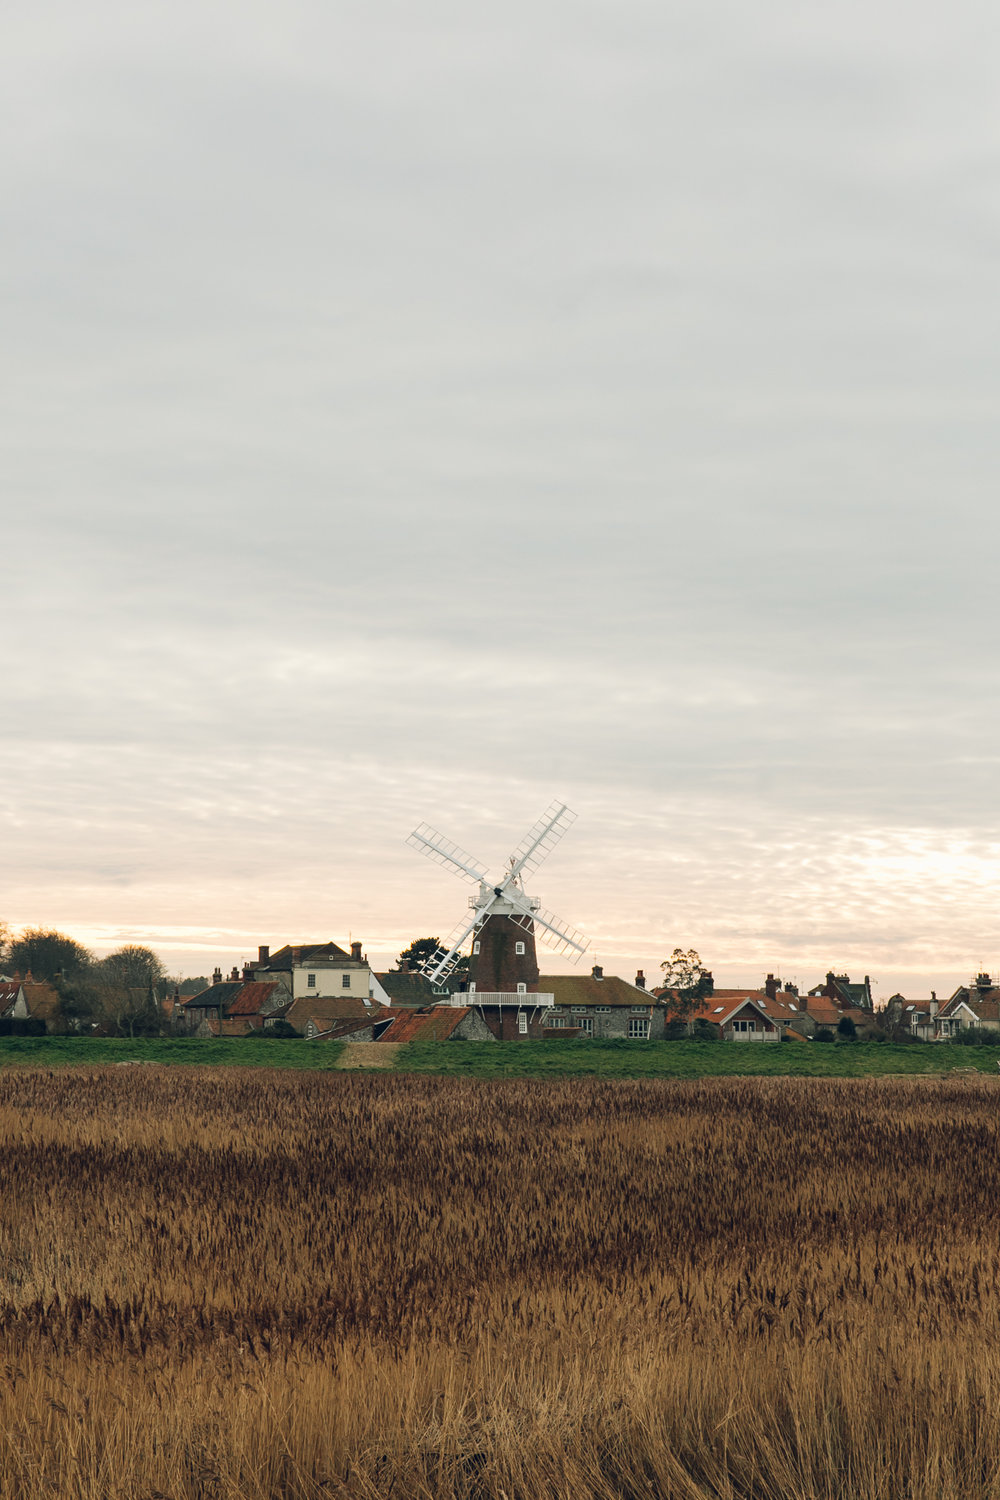 The windmill at Cley-next-the-Sea in North Norfolk.